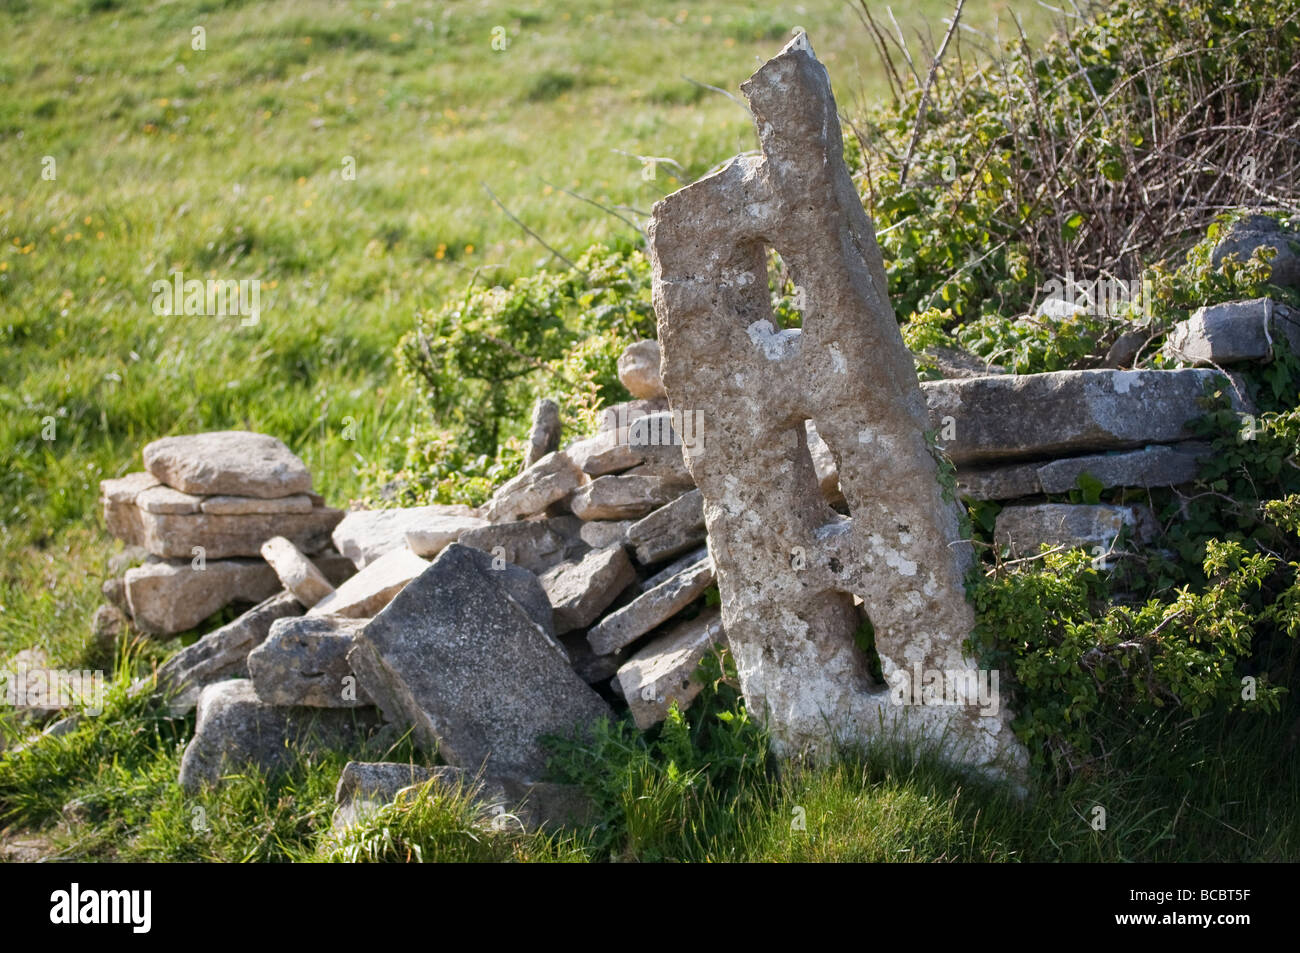 Abandoned stone gatepost in a Dorset field - Stock Image